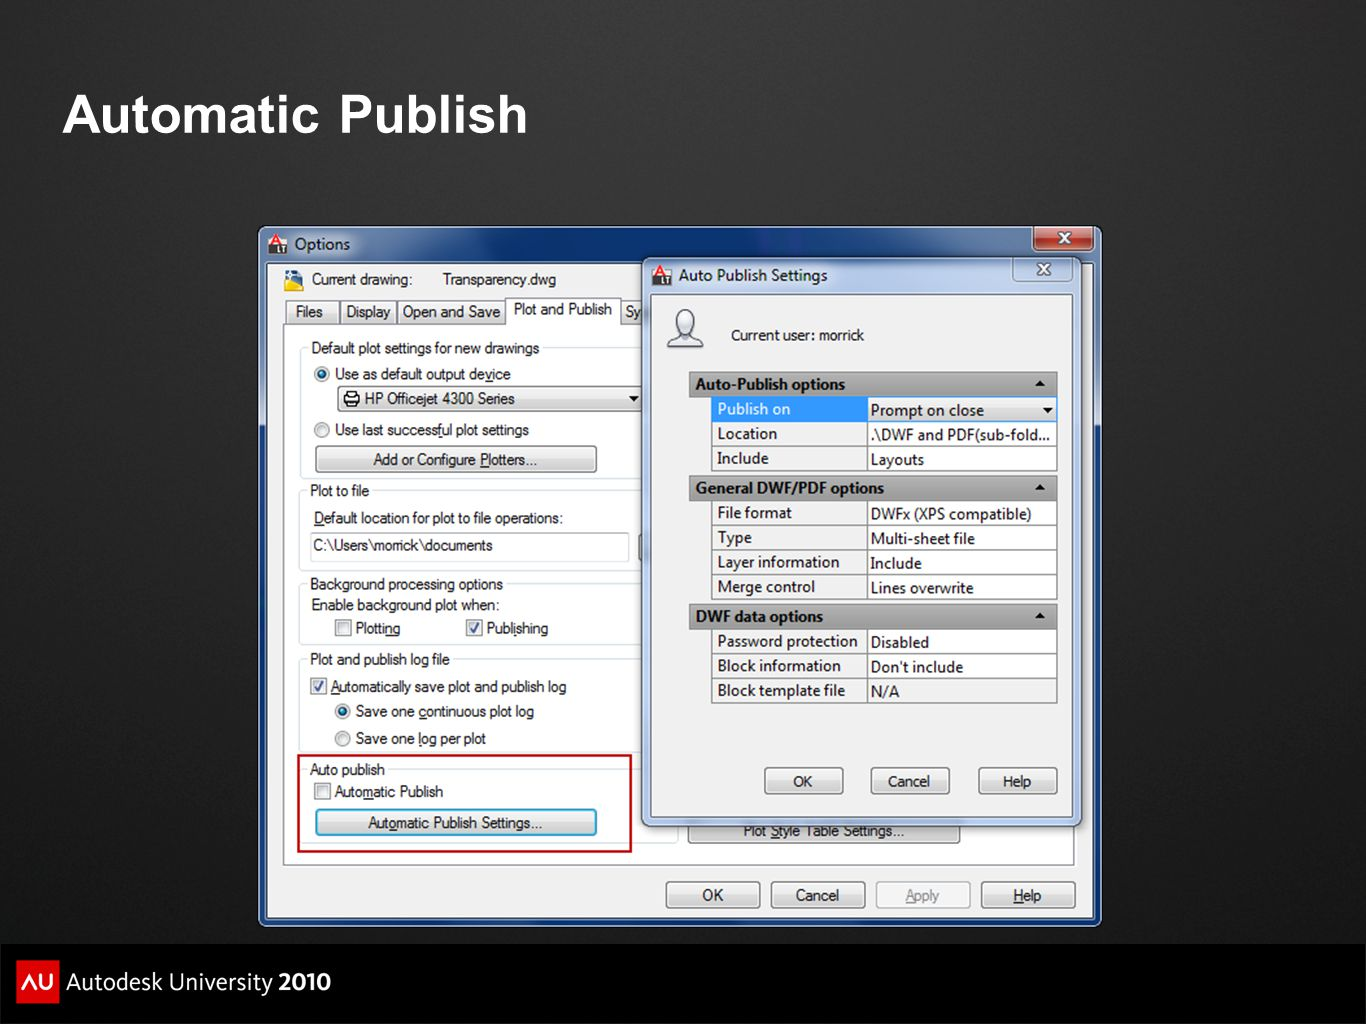 Automatic Publish